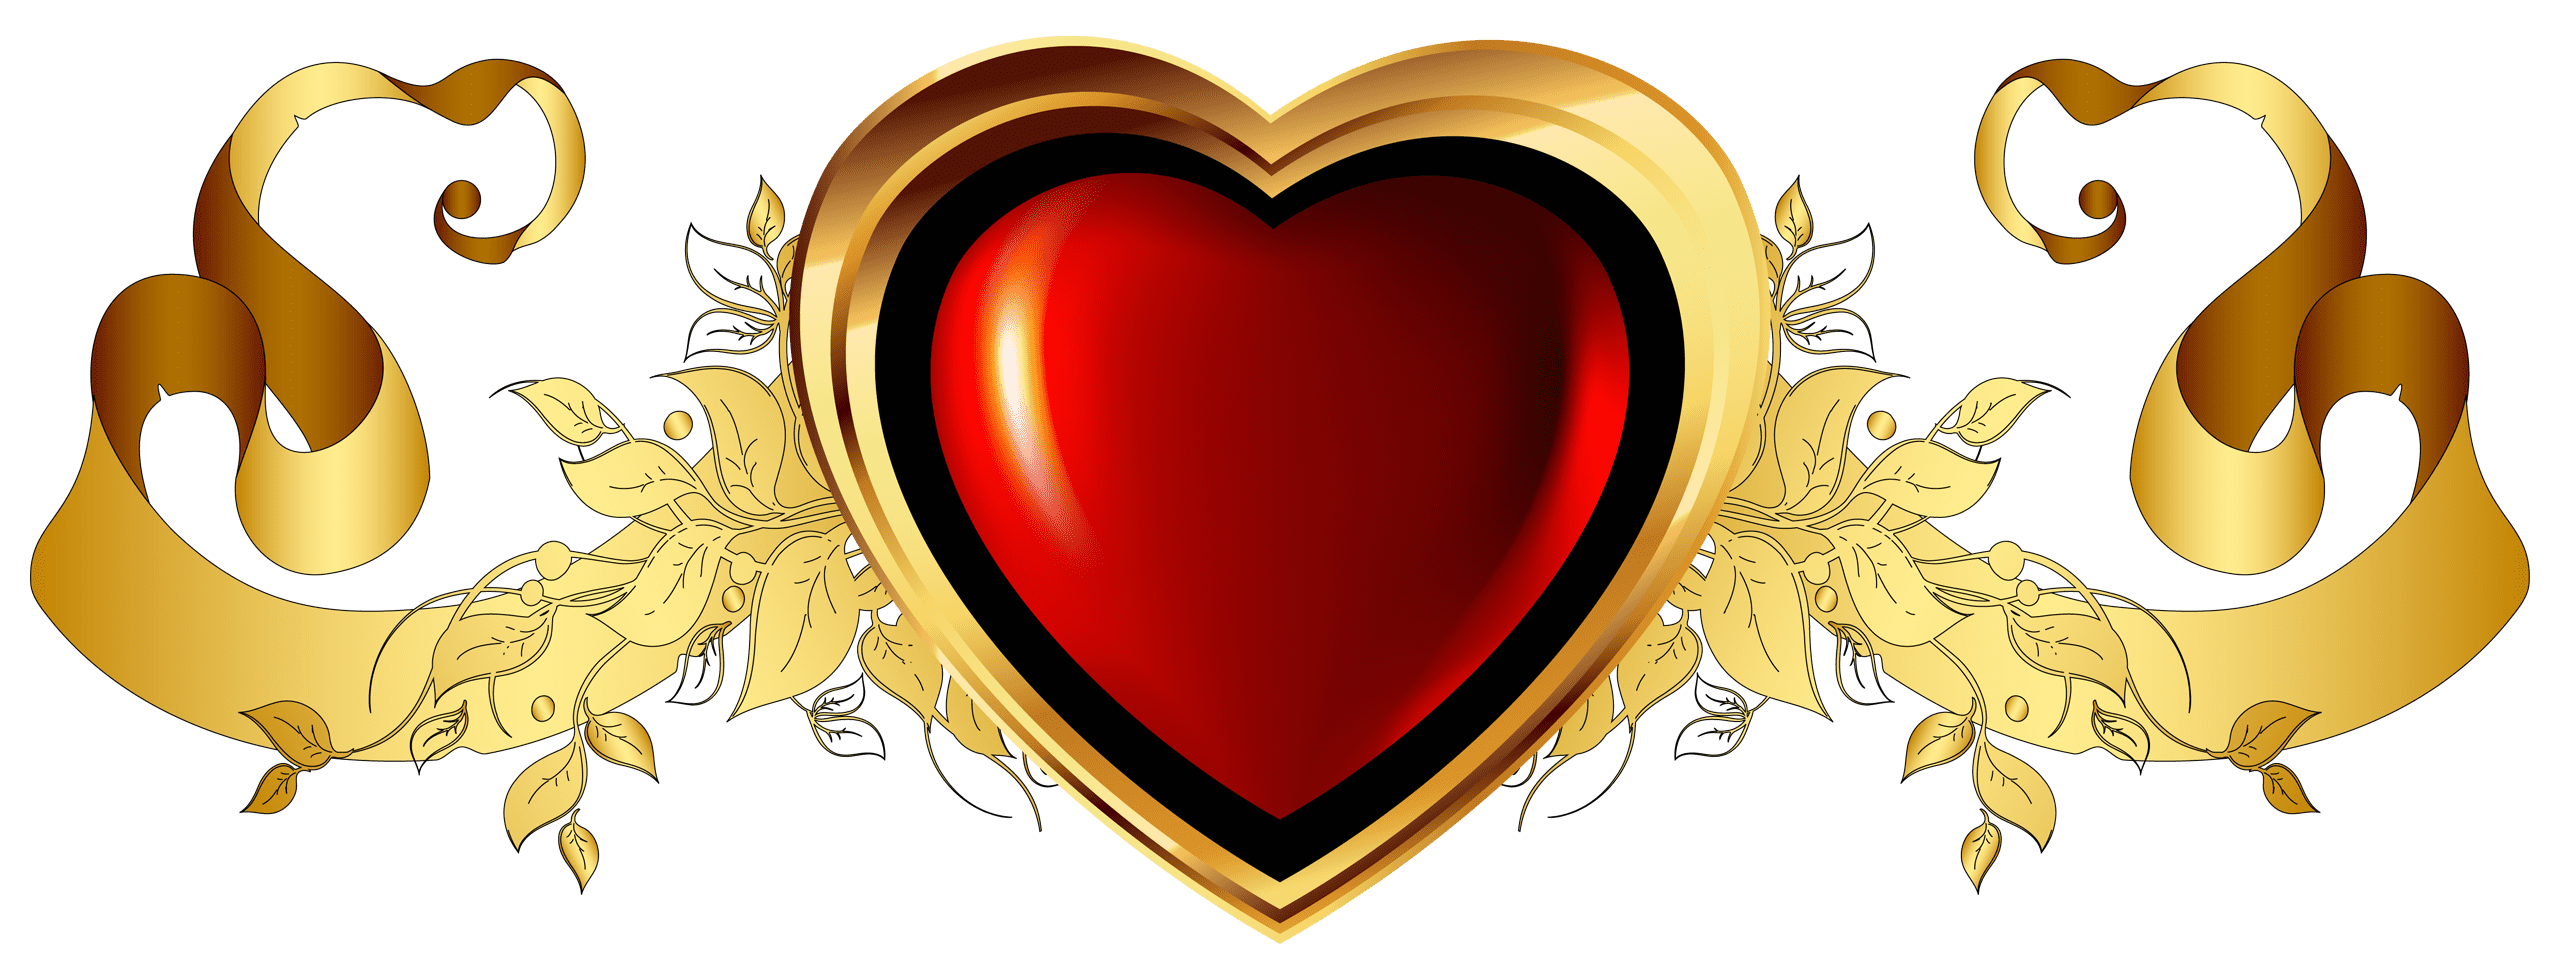 Large Red Heart with Gold Banner Element Clipart